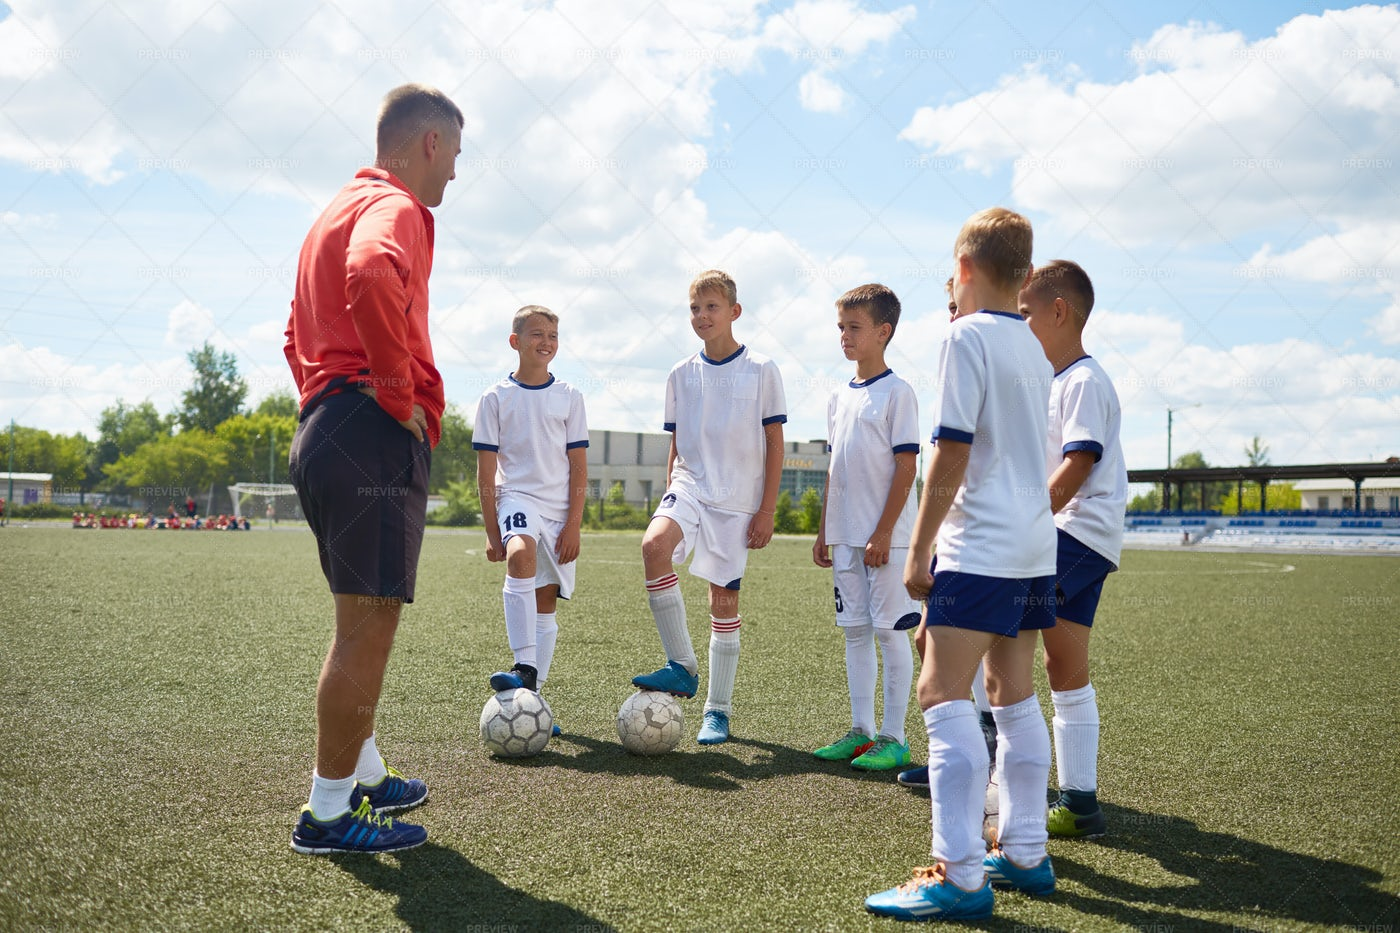 Junior Football Team Listening To...: Stock Photos